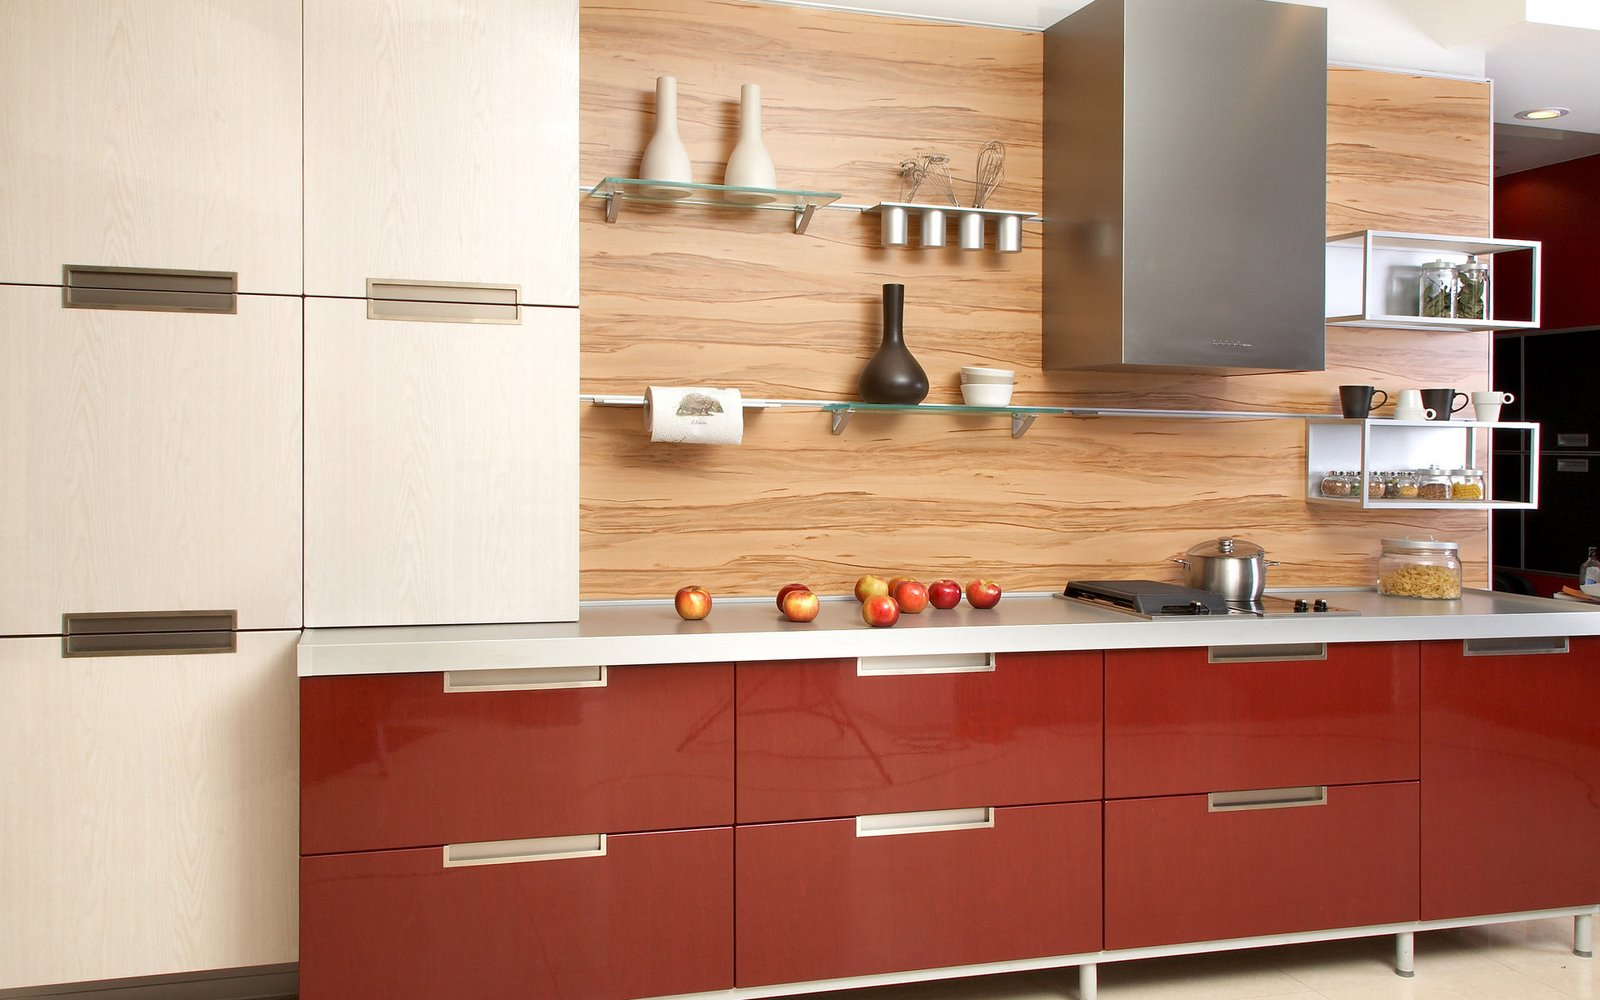 Glossy Red Kitchen Cabinet Glass Floating Shelves Italian Kitchen Design (Image 3 of 8)